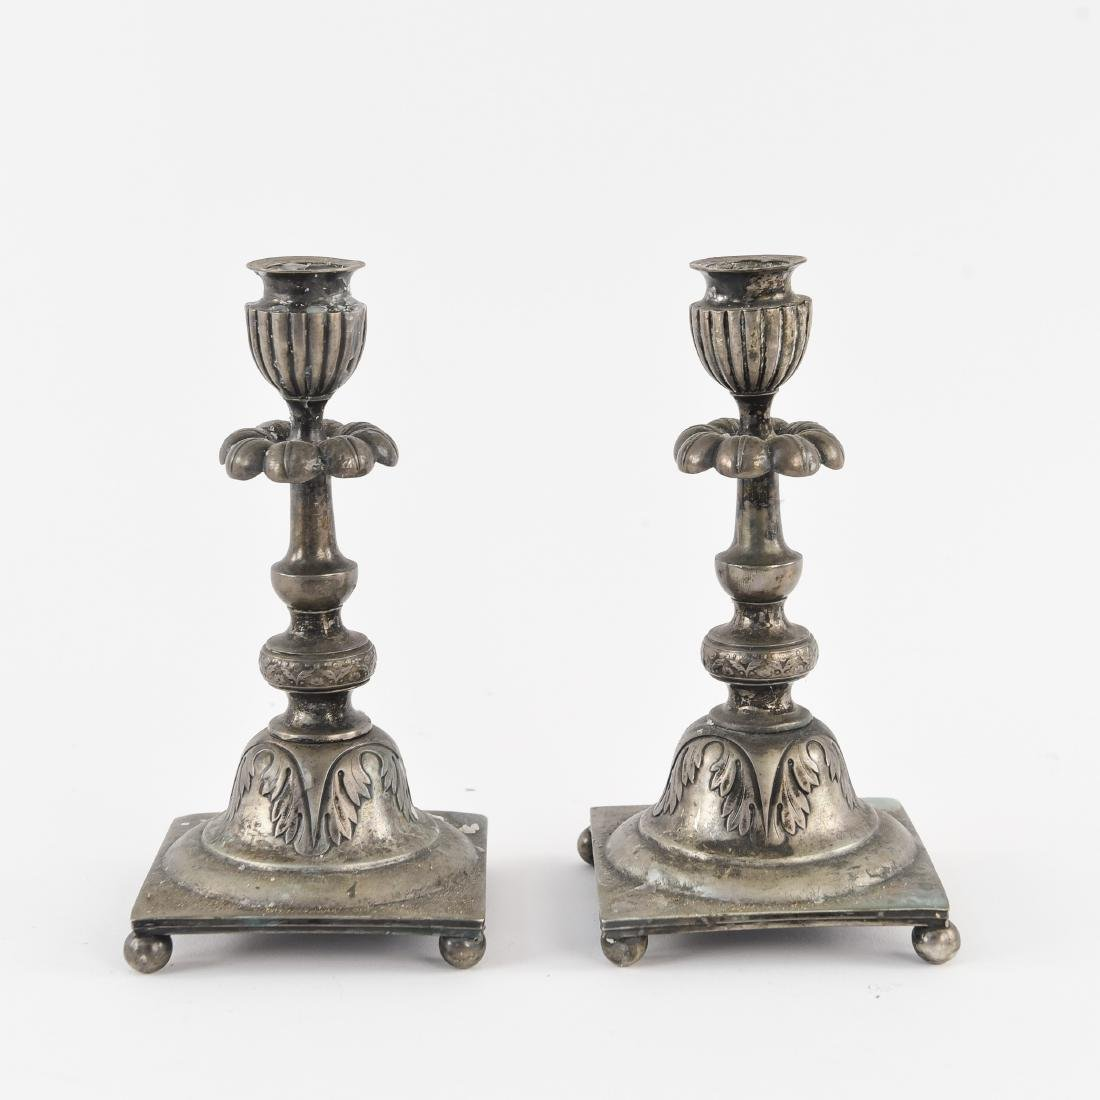 PAIR OF SILVER CANDLE STICKS